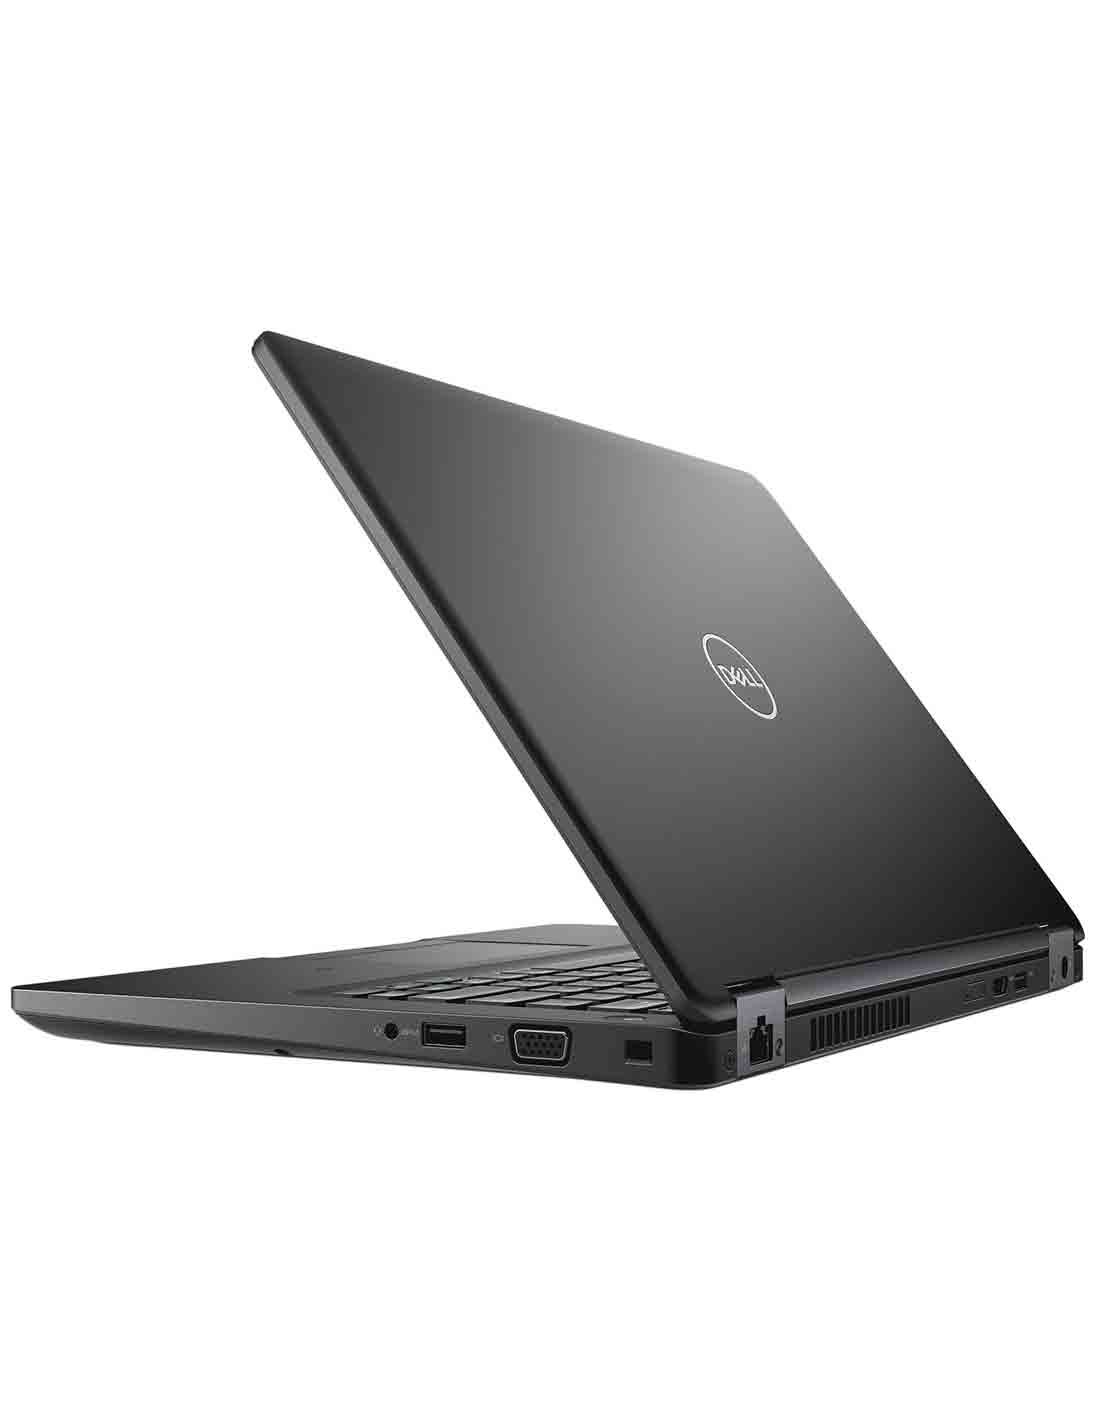 Dell Latitude 5580 i7 Laptop images and photos in Dubai online store